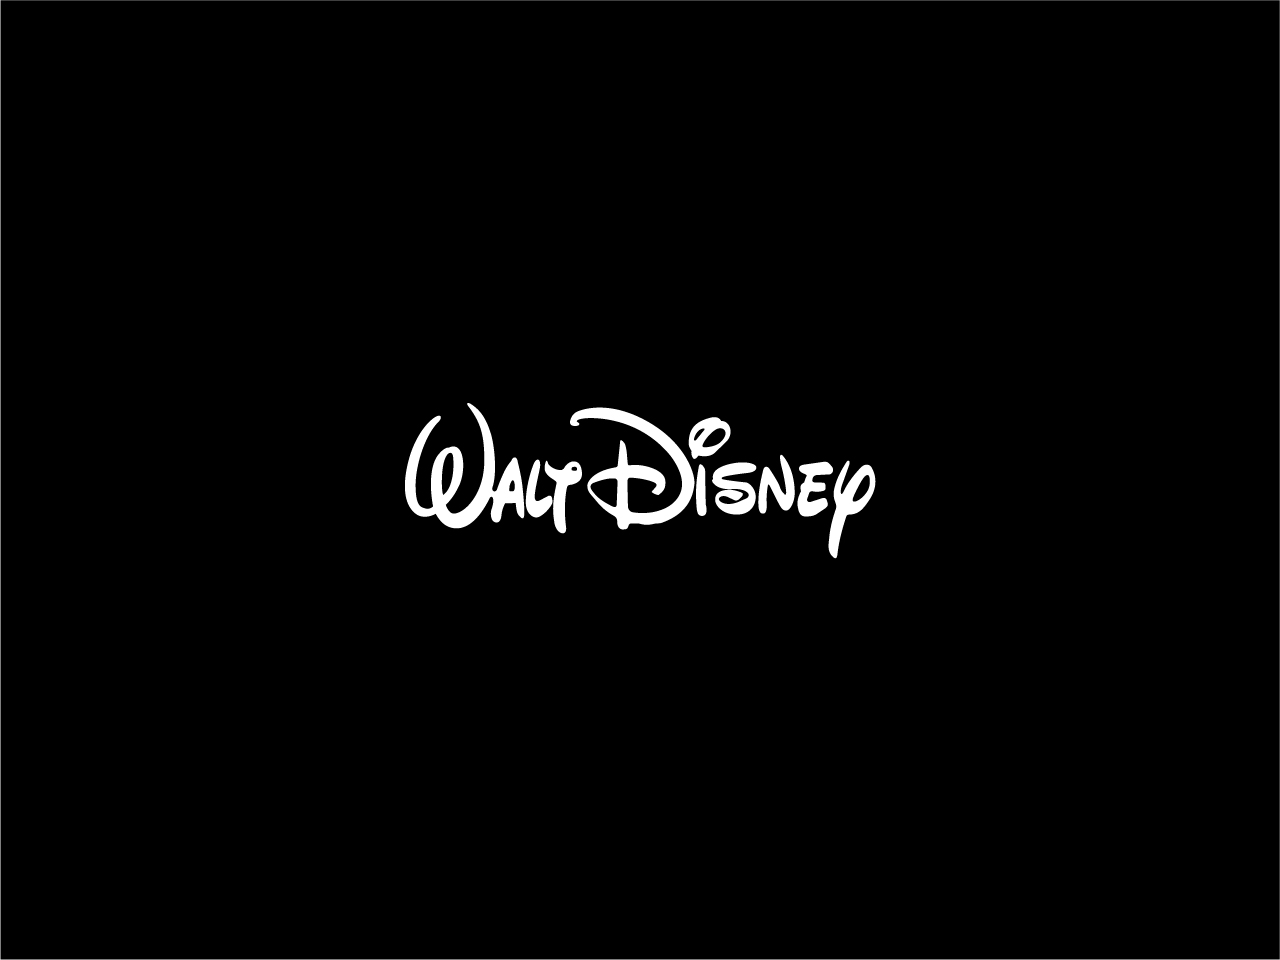 Disney Logo 756 Hd Wallpapers in Logos   Imagescicom 1280x960